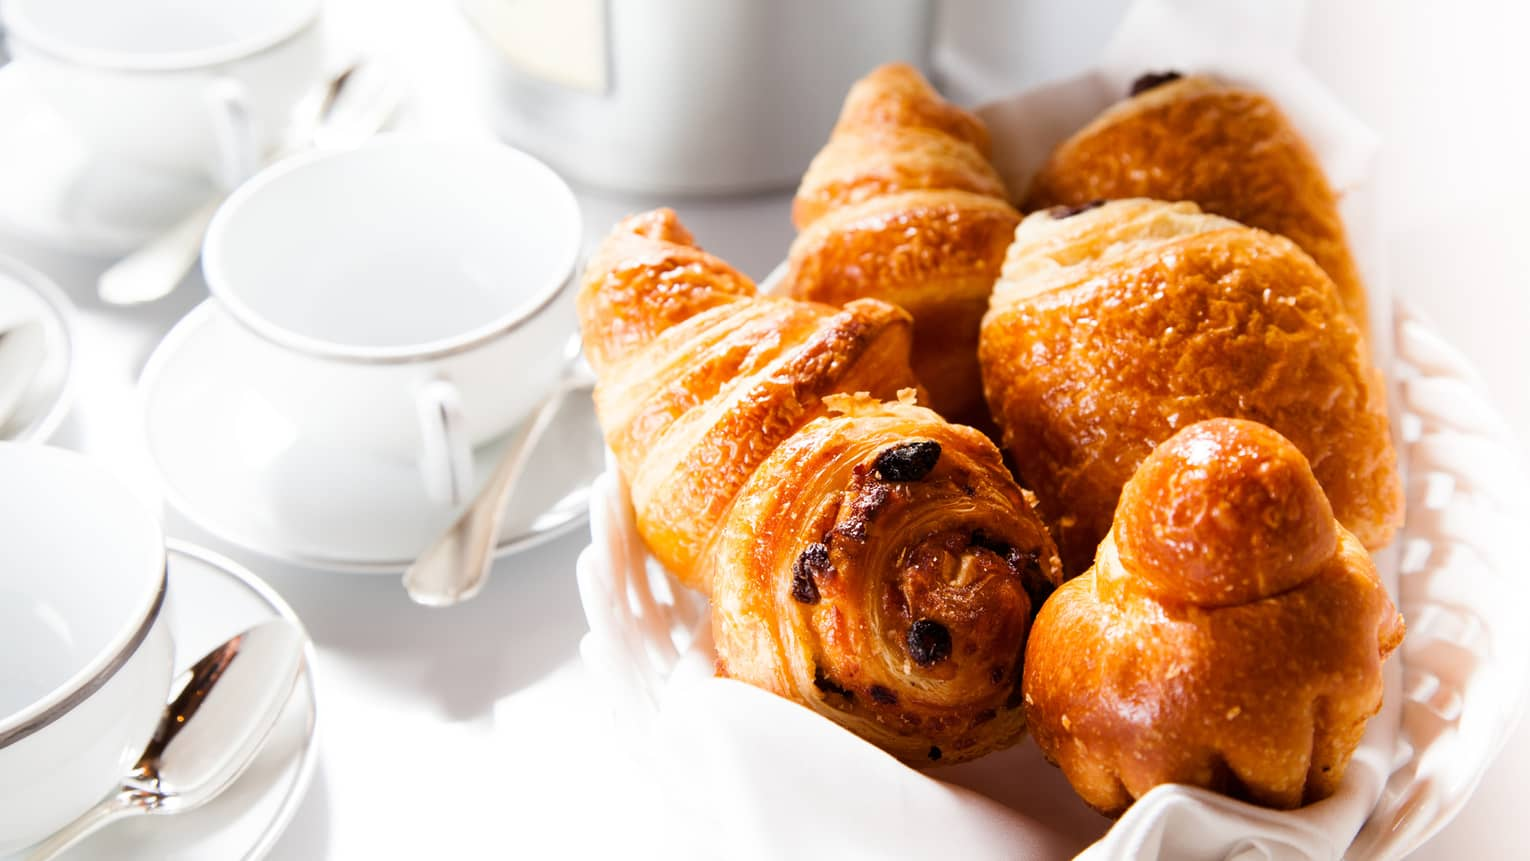 Fresh pastries, croissants in basket by white tea cups